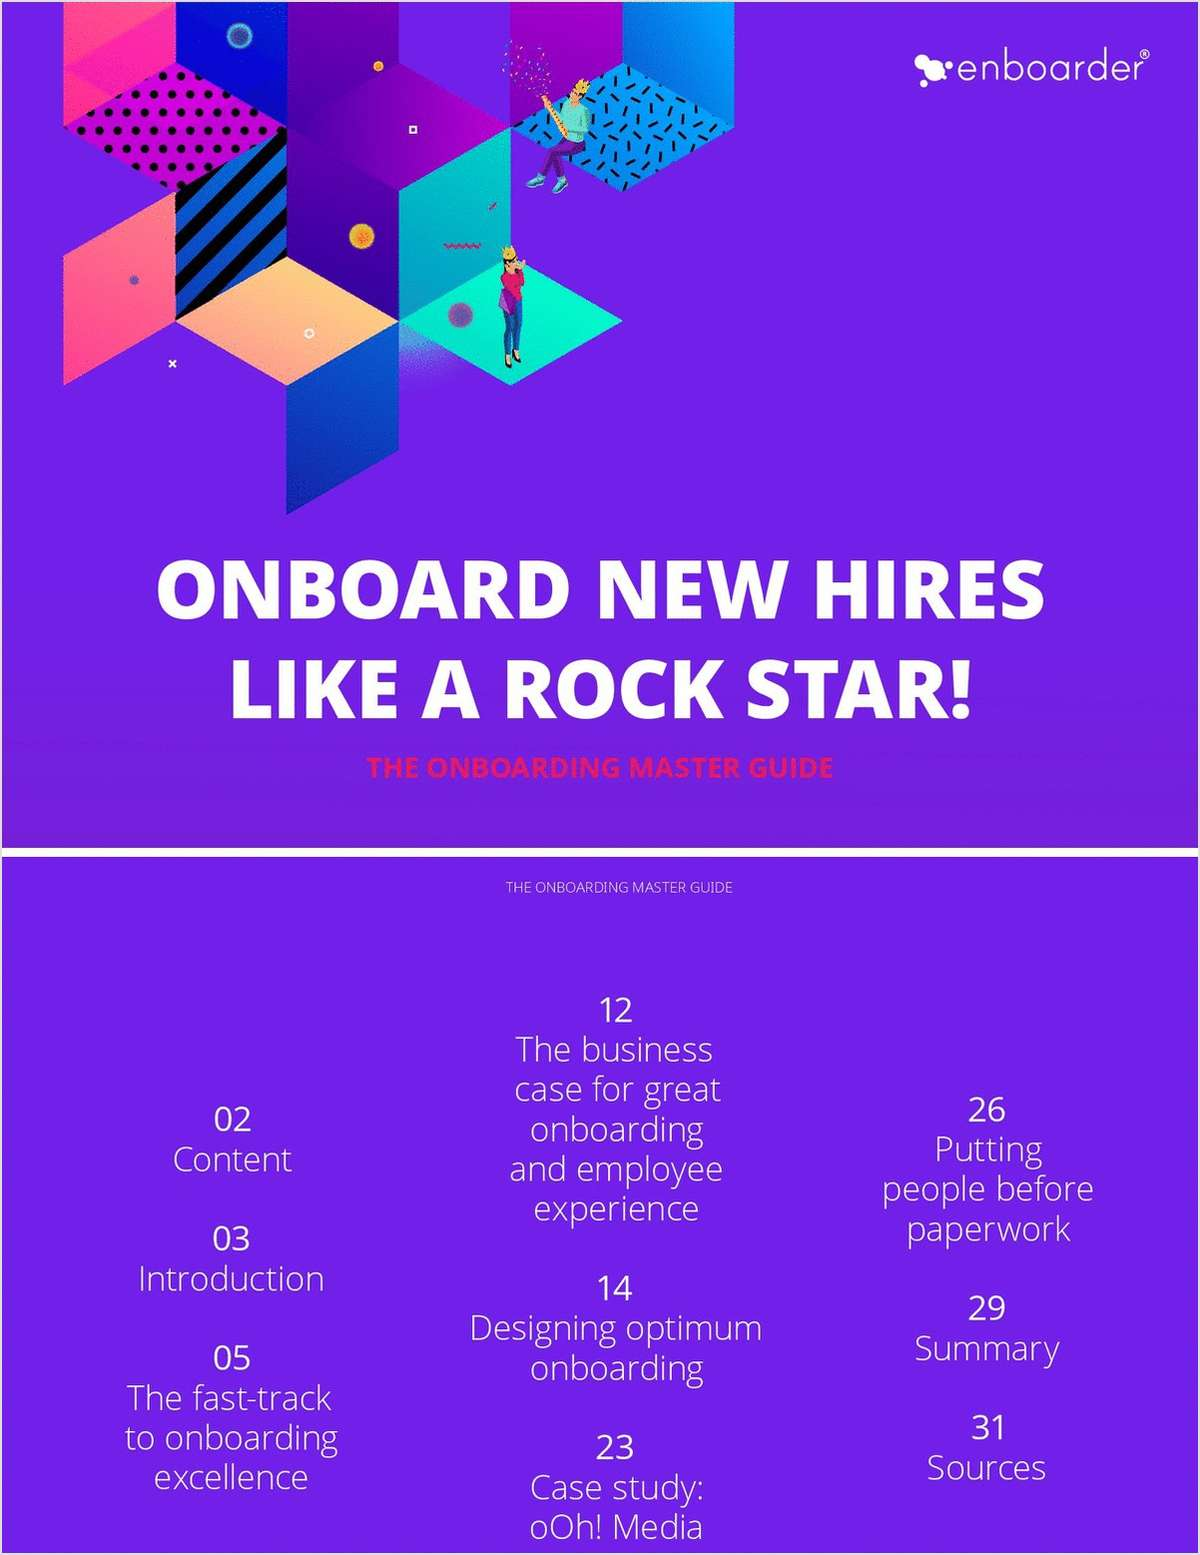 Onboard New Hires like a Rock Star